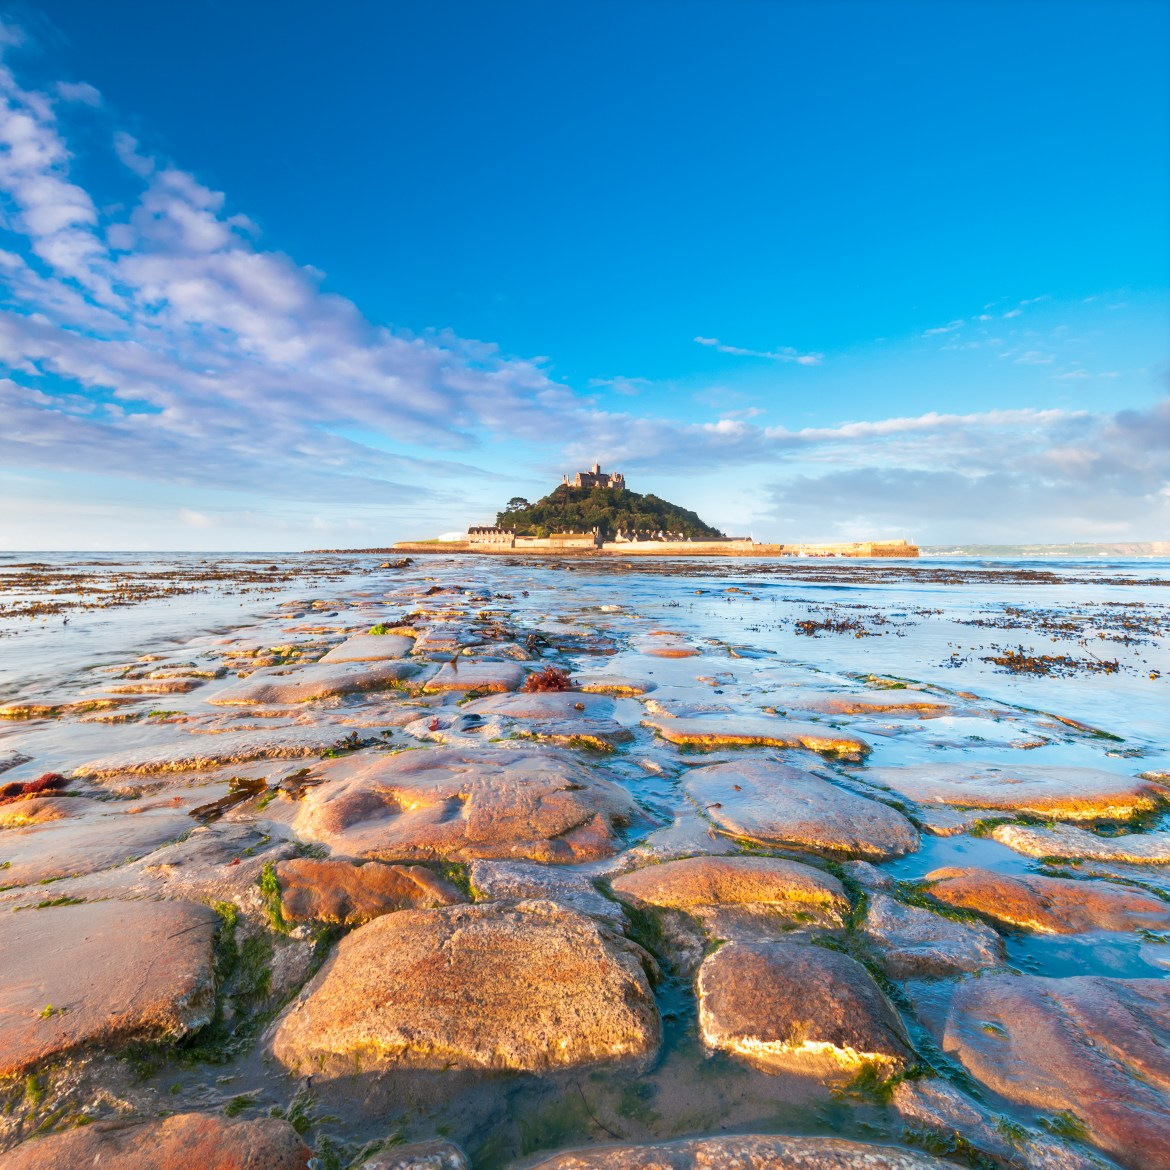 There are fine views of the ancient tidal island of St Michael's Mount